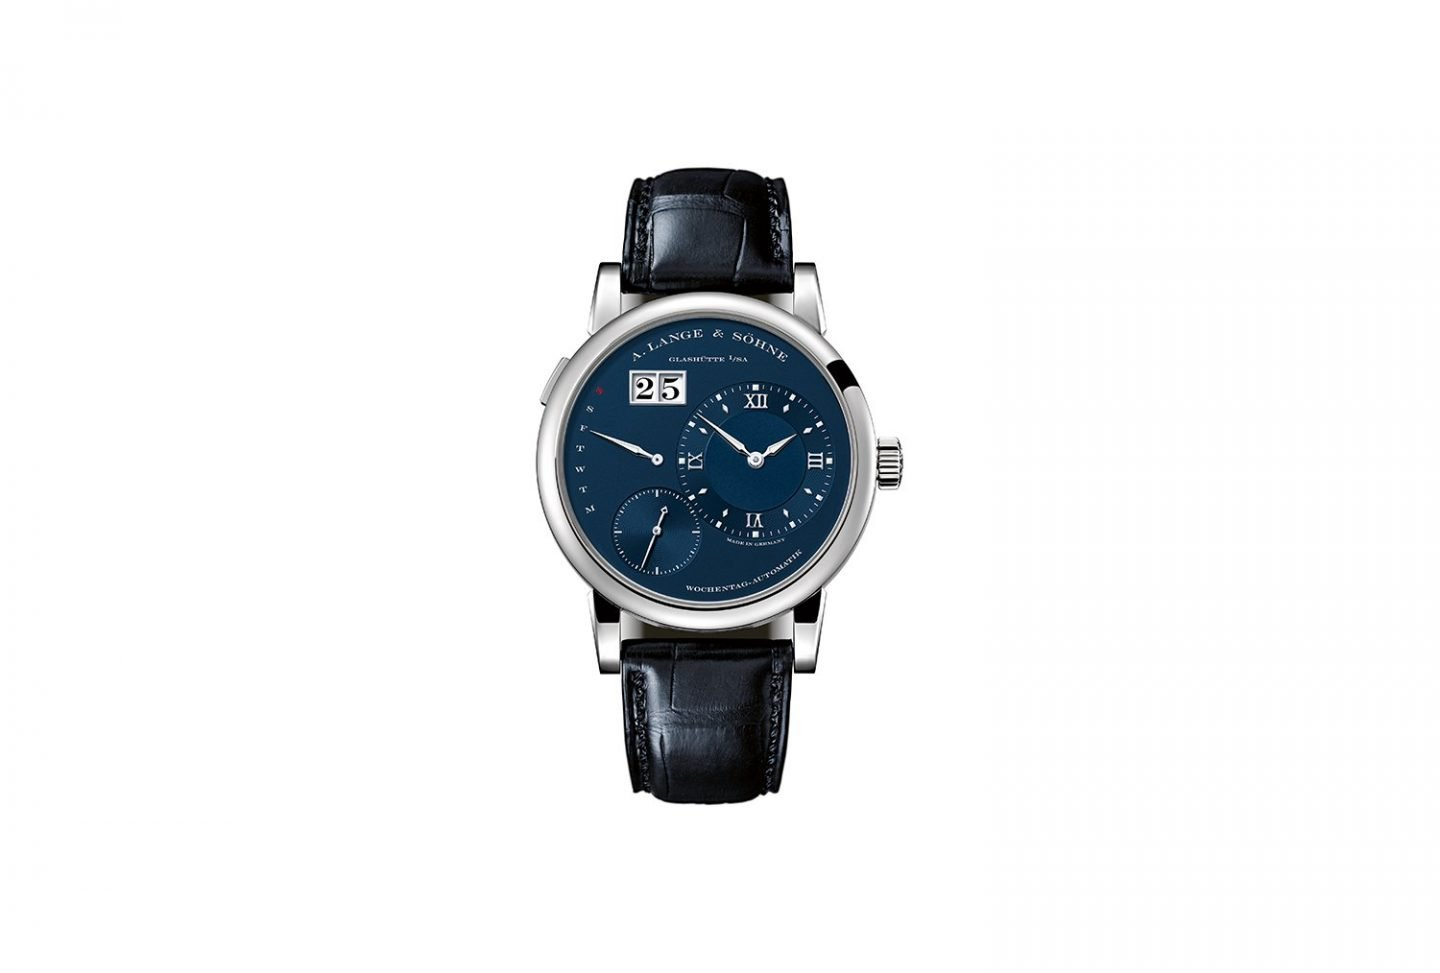 A_Lange_Soehne_Watch_03